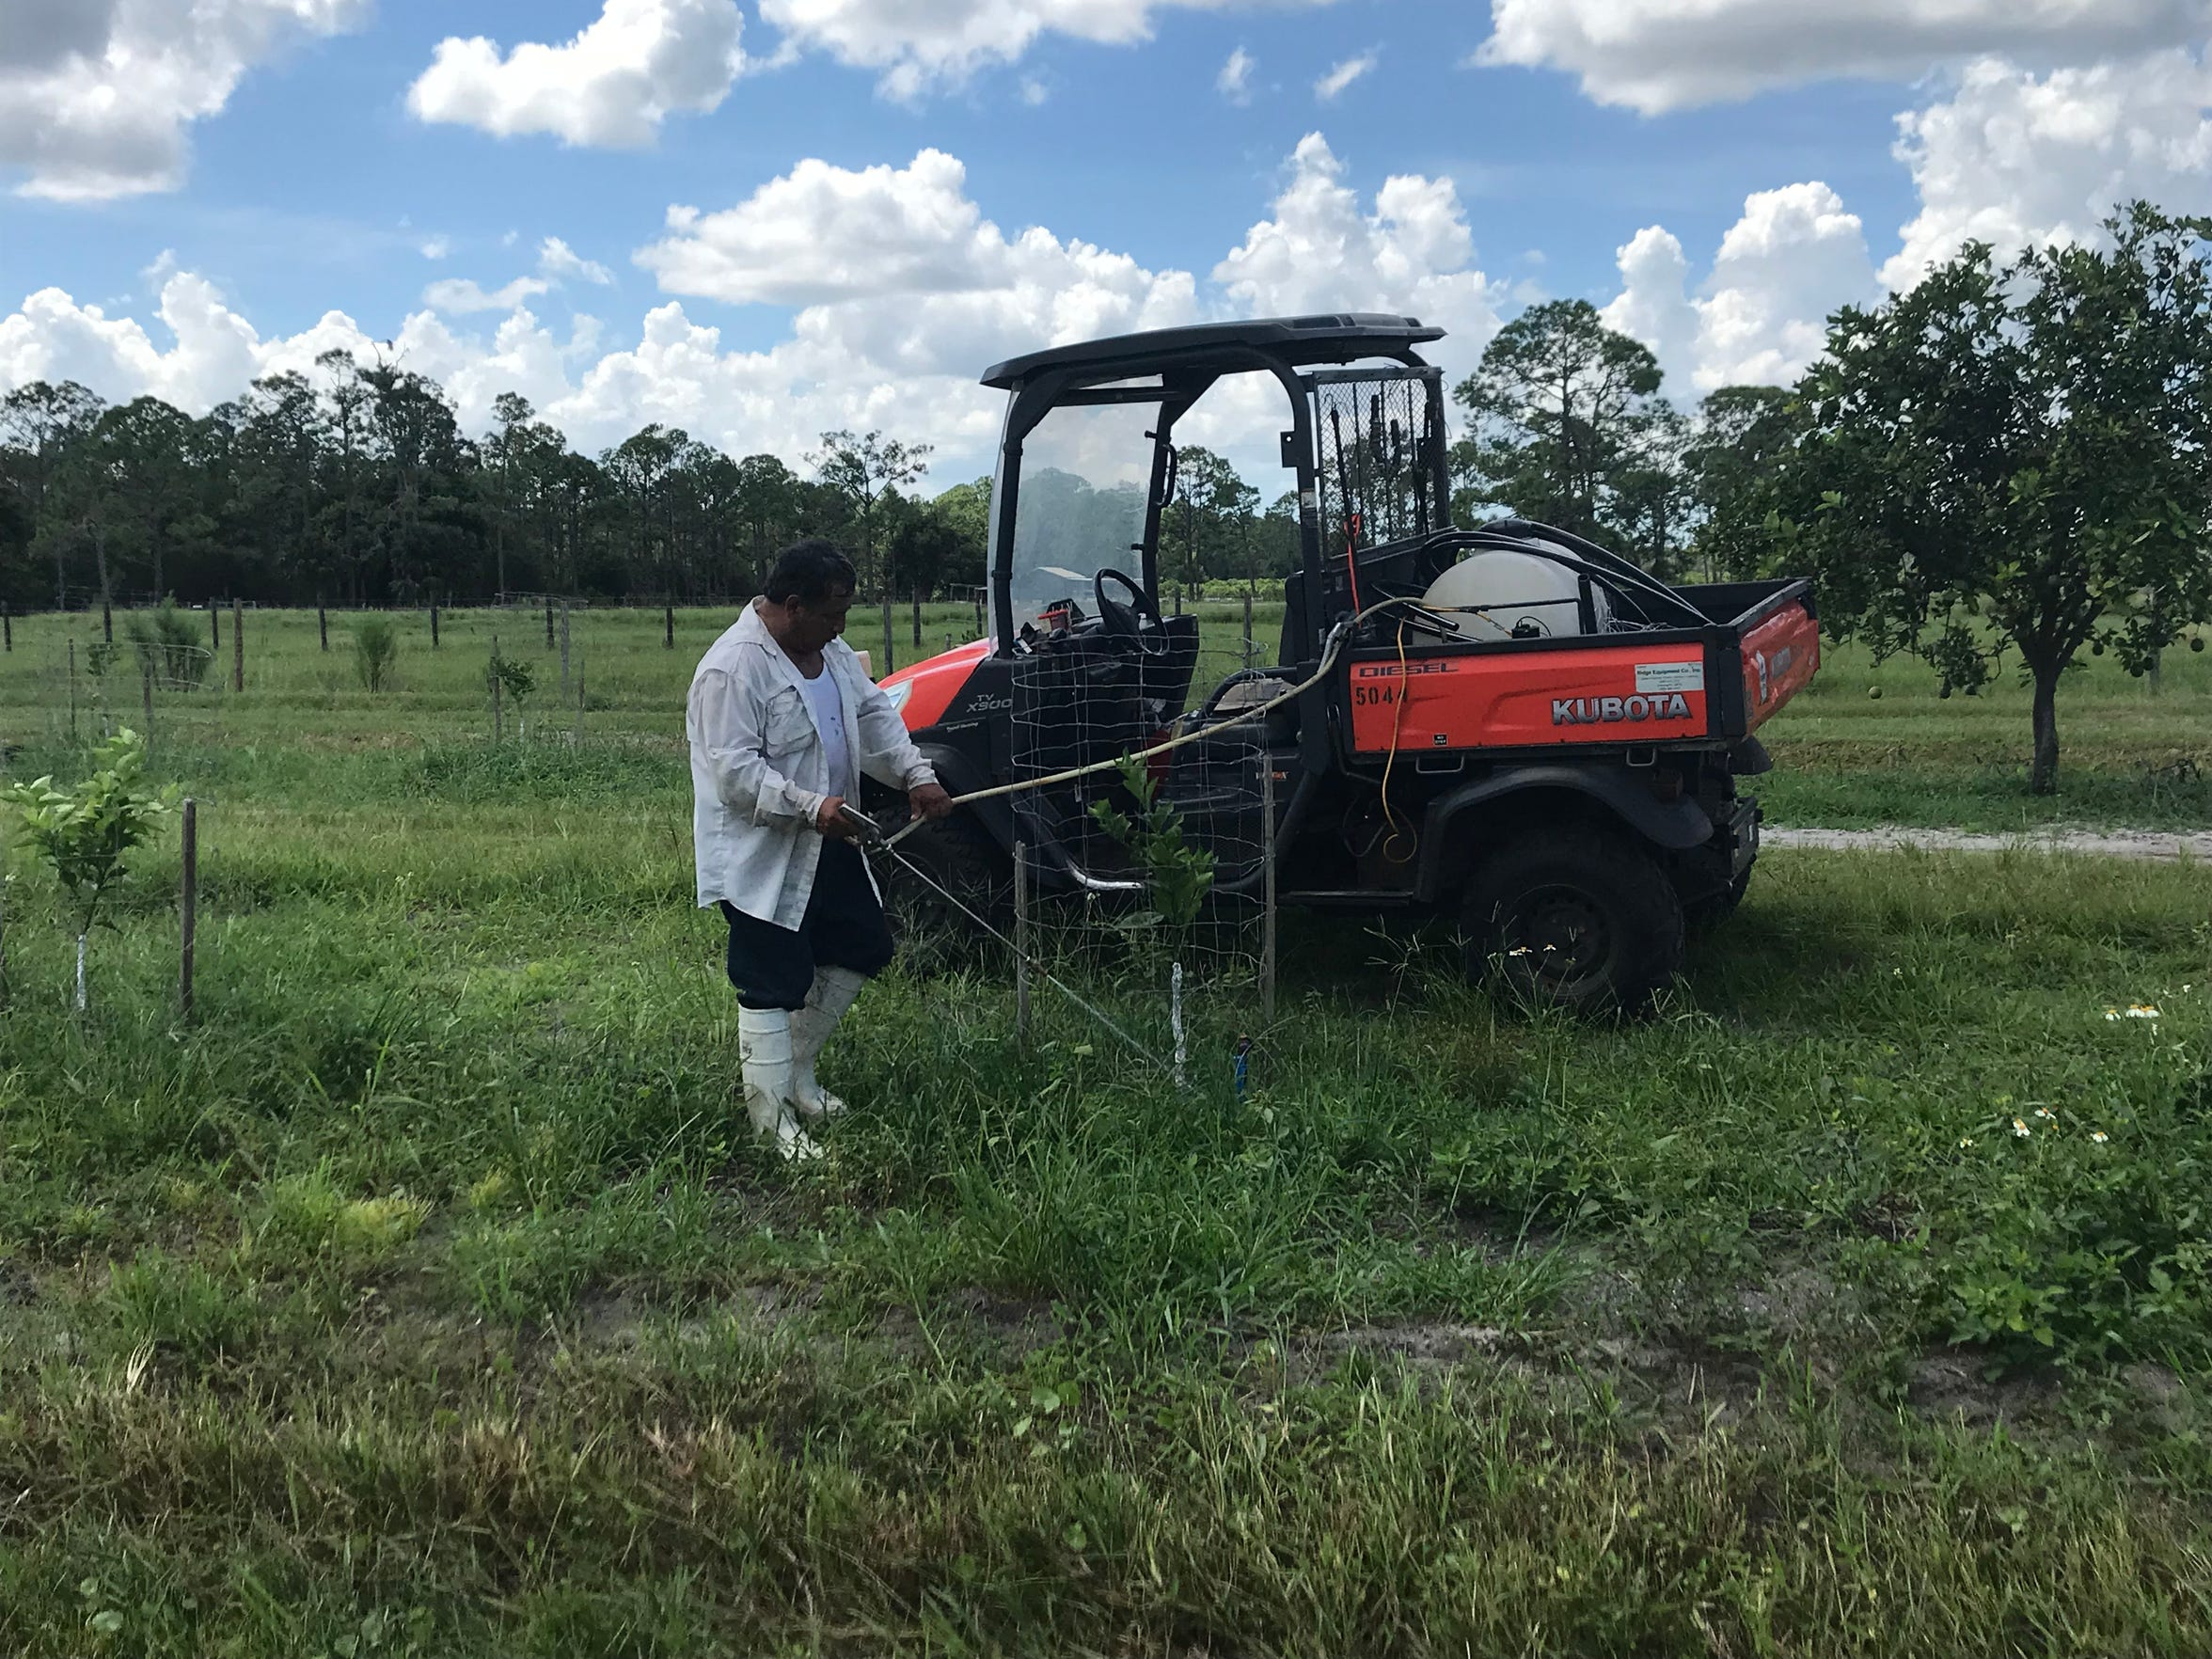 Jose Rodriguez waters new Valencia trees at Bear Hammock Grove off Immokalee Road in eastern Collier County on Sept. 17, 2018.